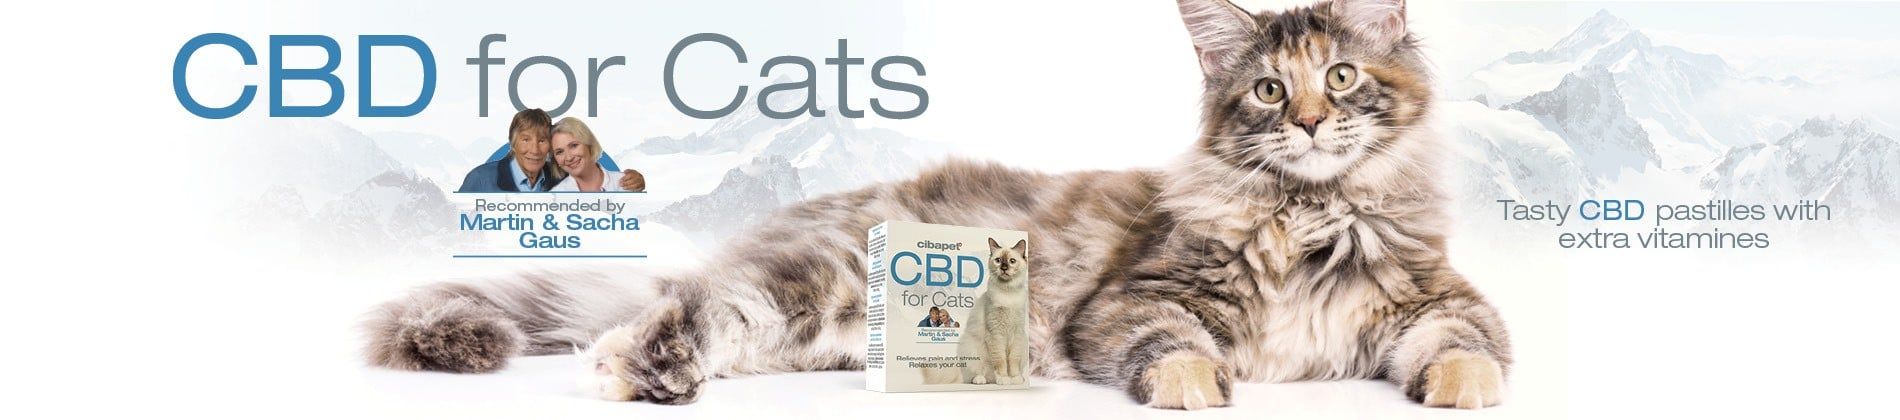 CBD Pastilles For Cats - CBD Pastilles for Cats - CBD Pastilles For Cats